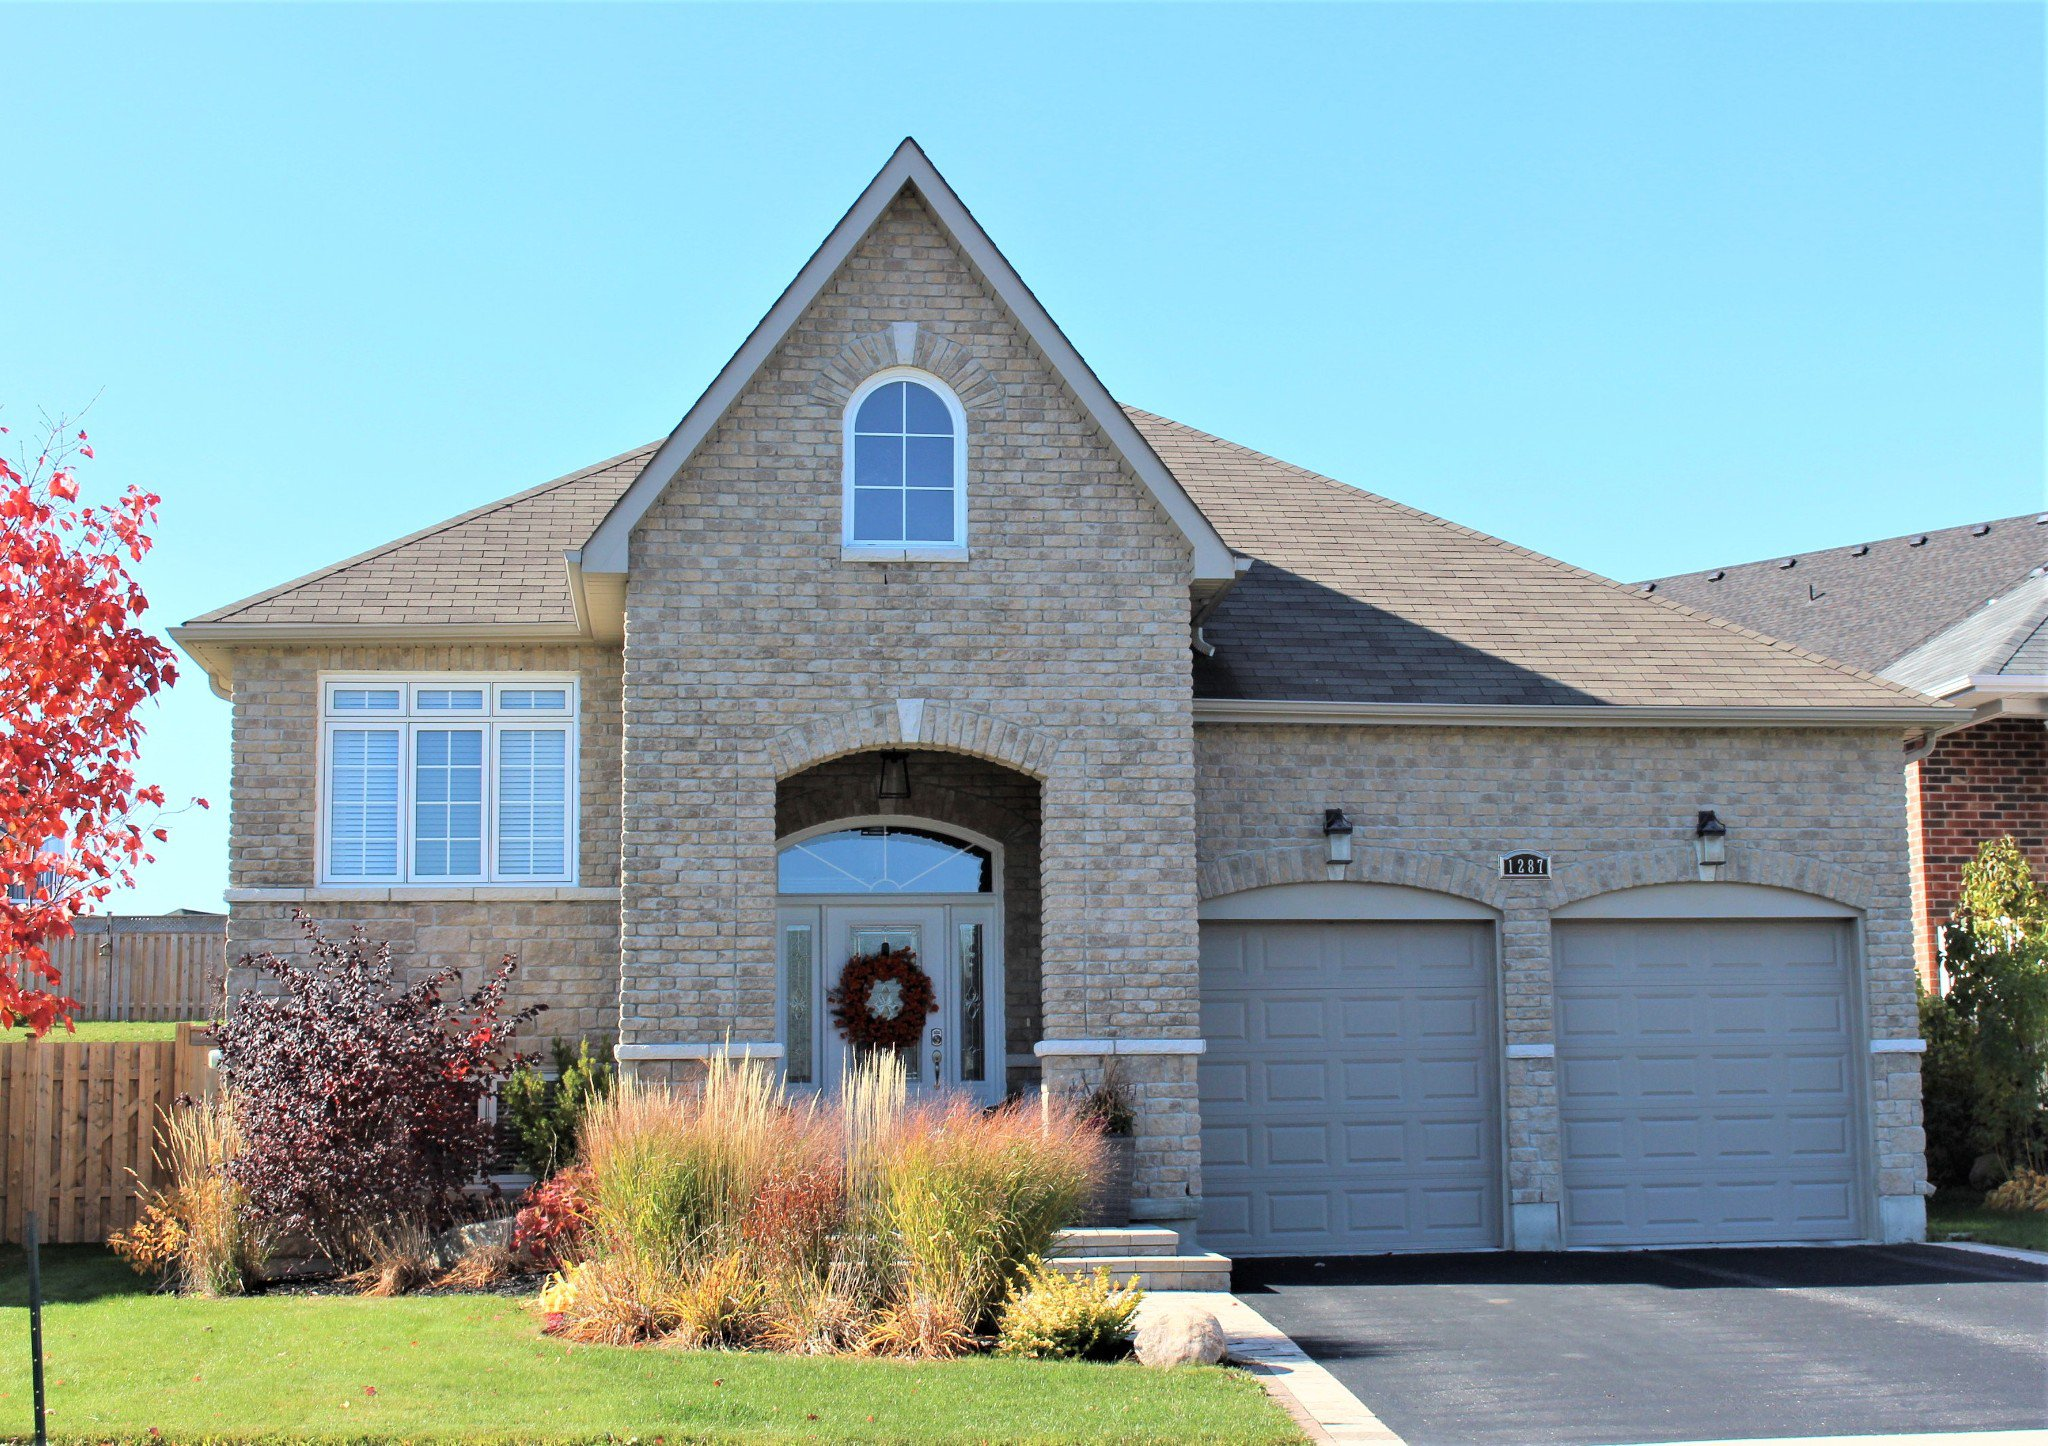 Main Photo: 1287 Alder Rd in Cobourg: Residential Detached for sale : MLS®# 230511